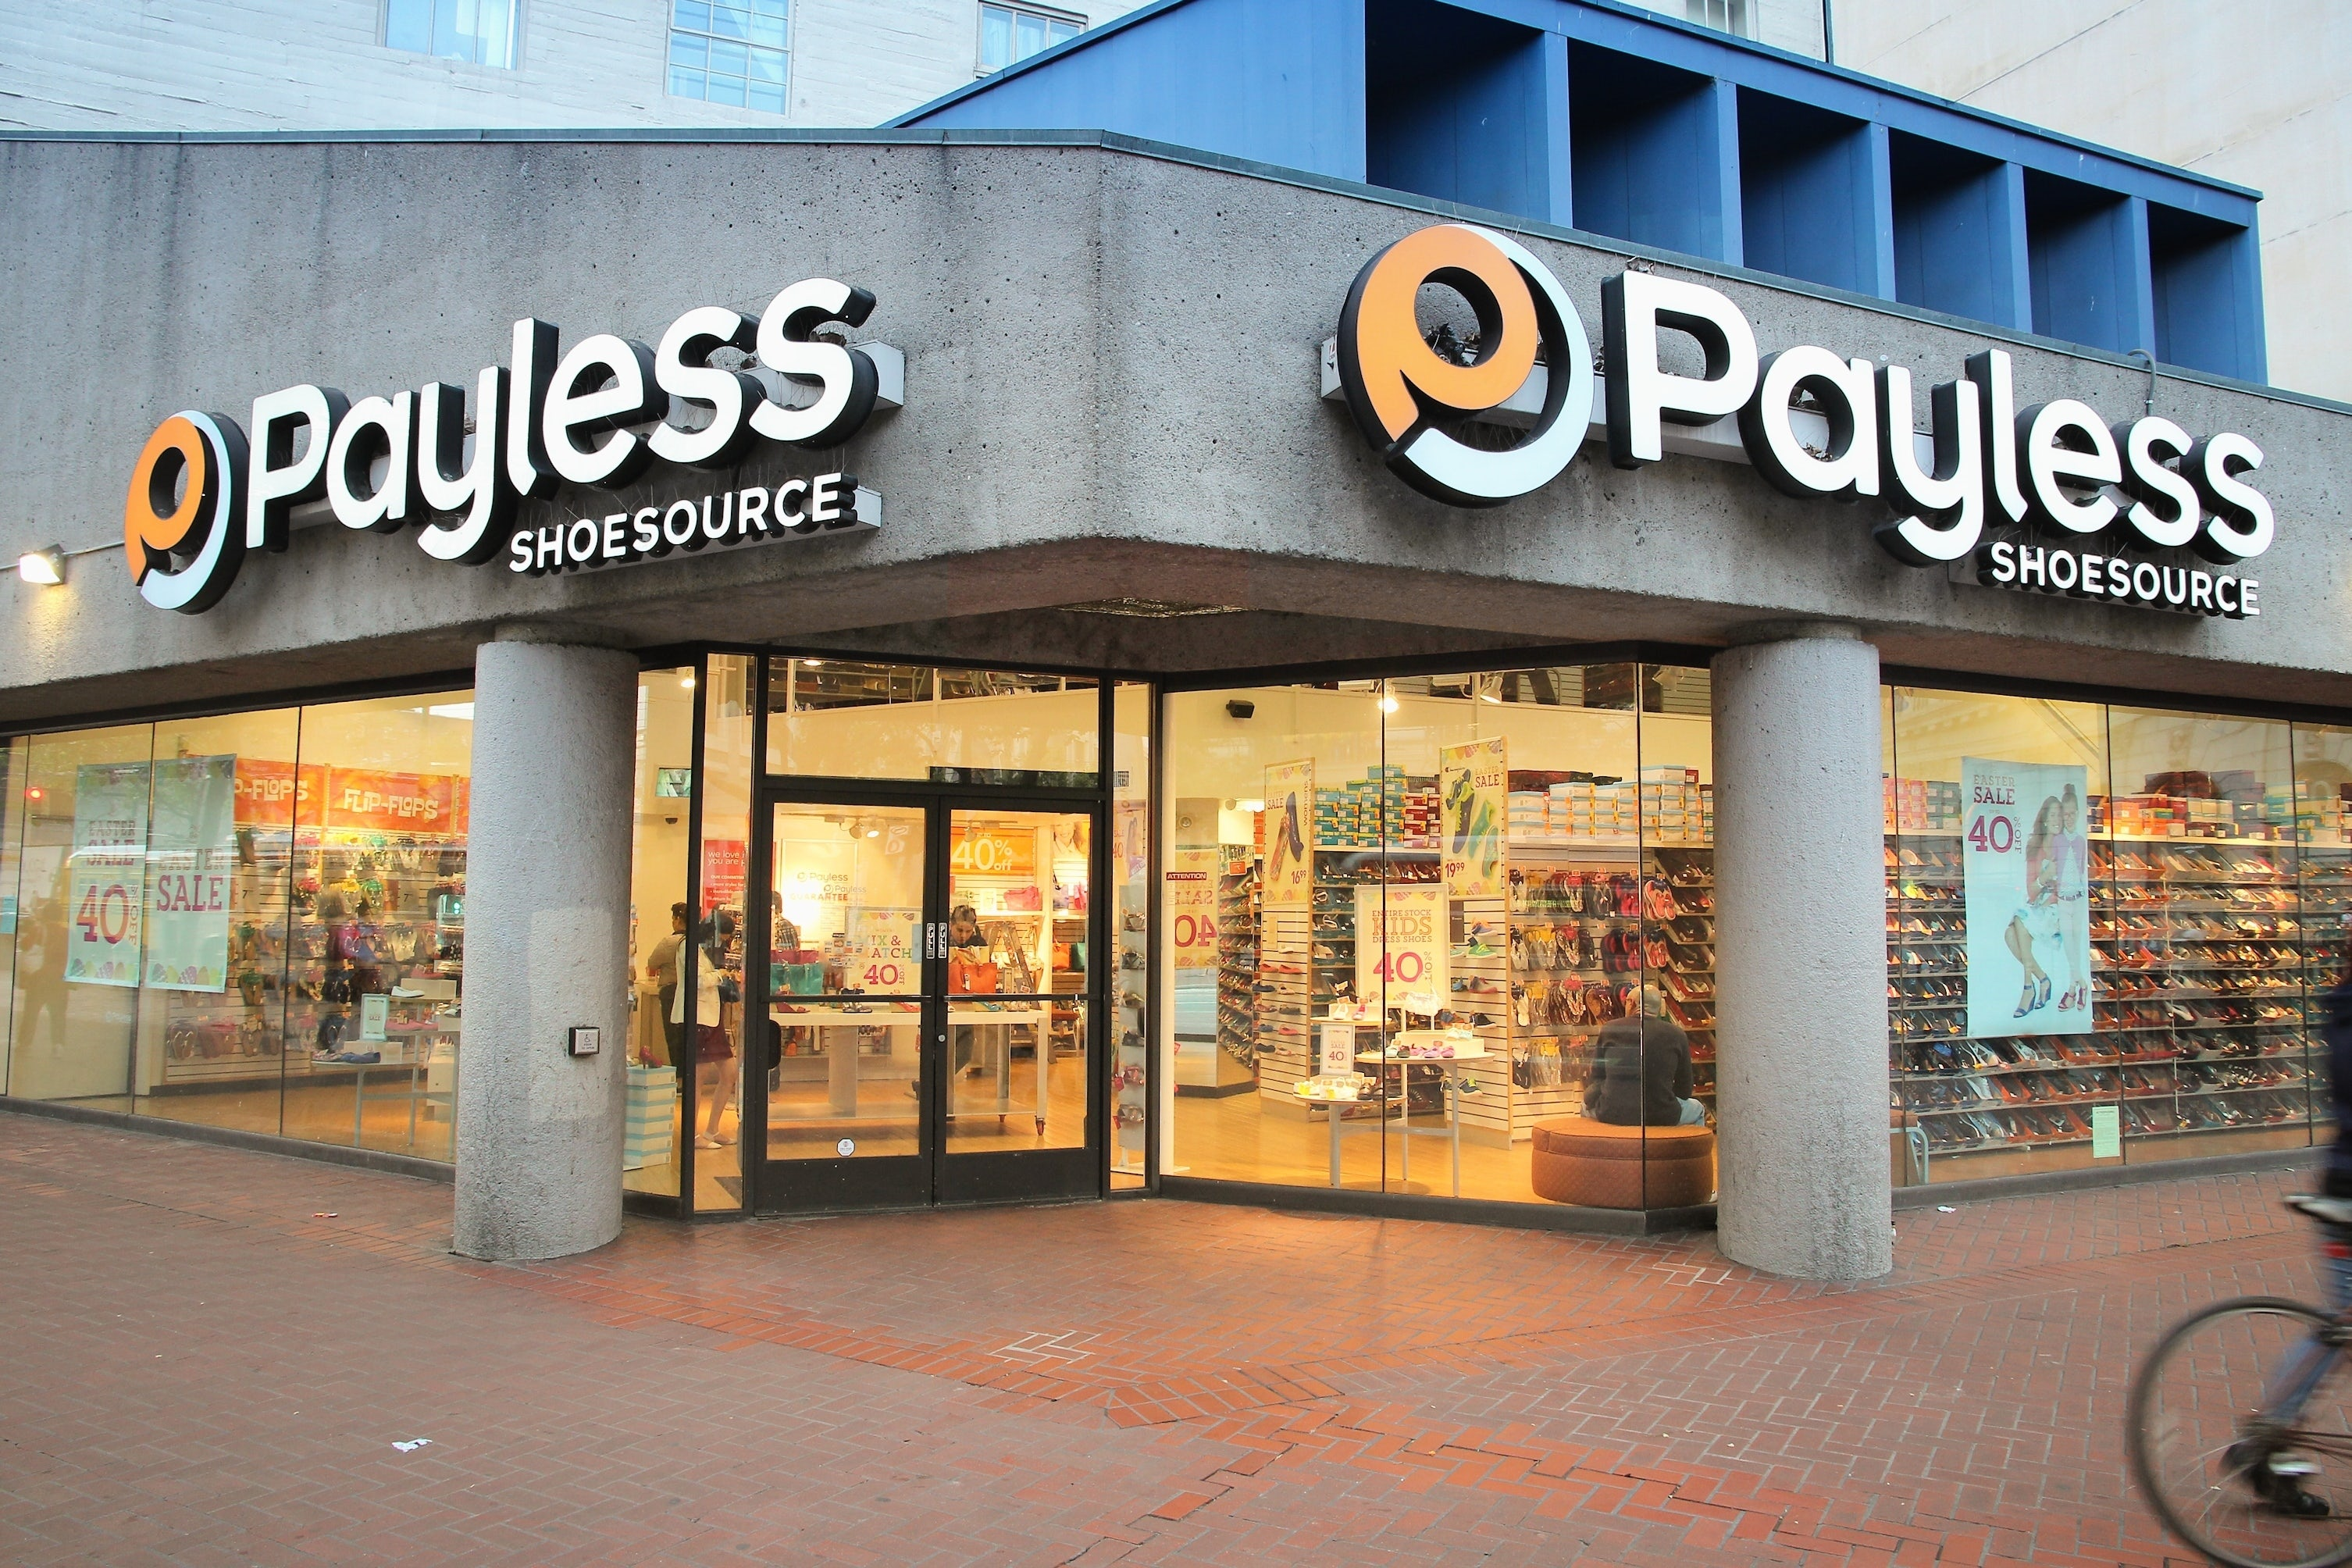 A Payless Shoe store | Source: Shutterstock